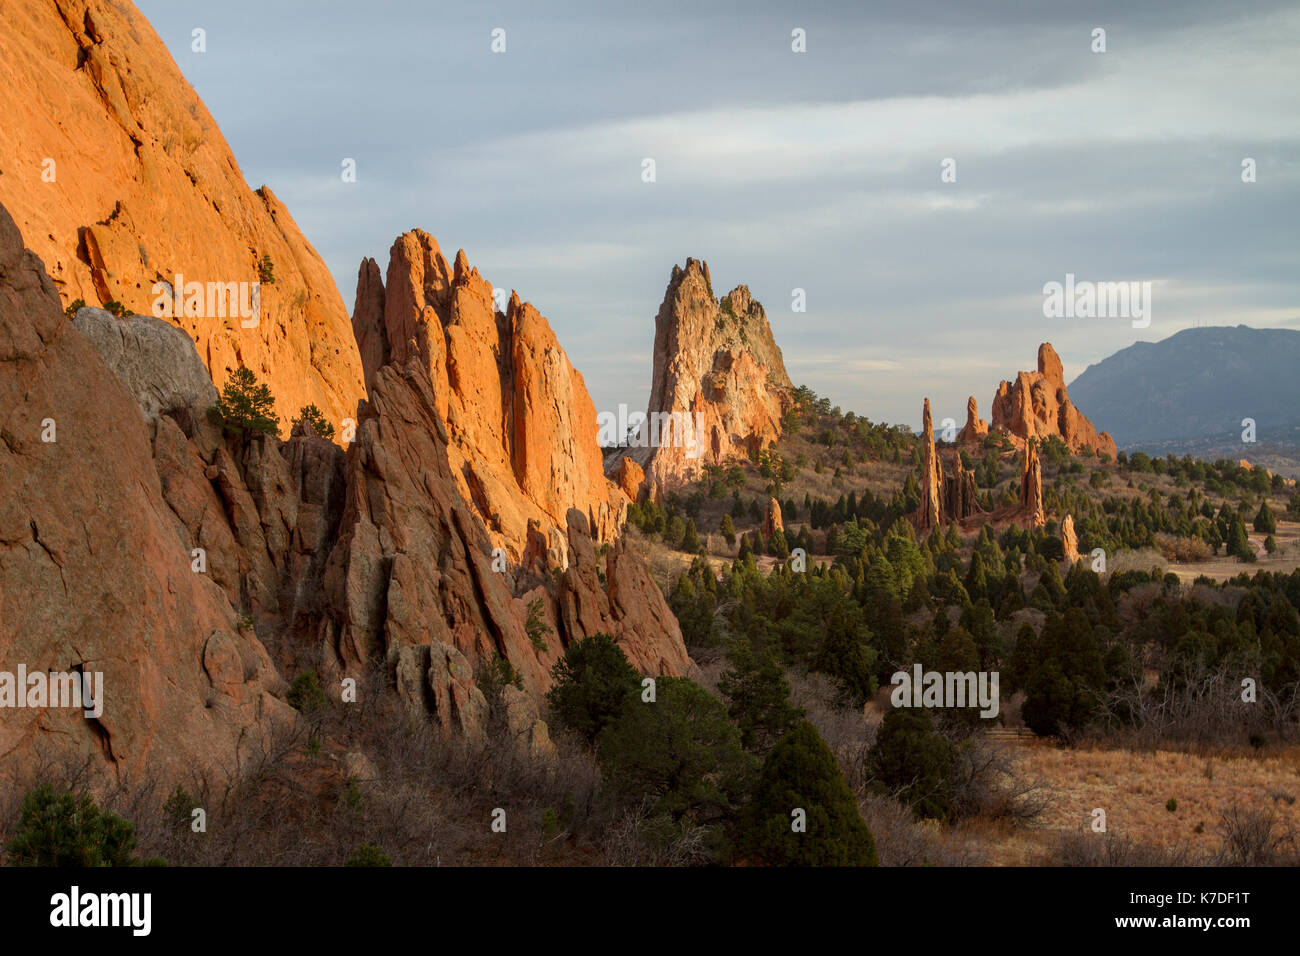 Rock formations at Garden of the Gods against cloudy sky during sunset - Stock Image